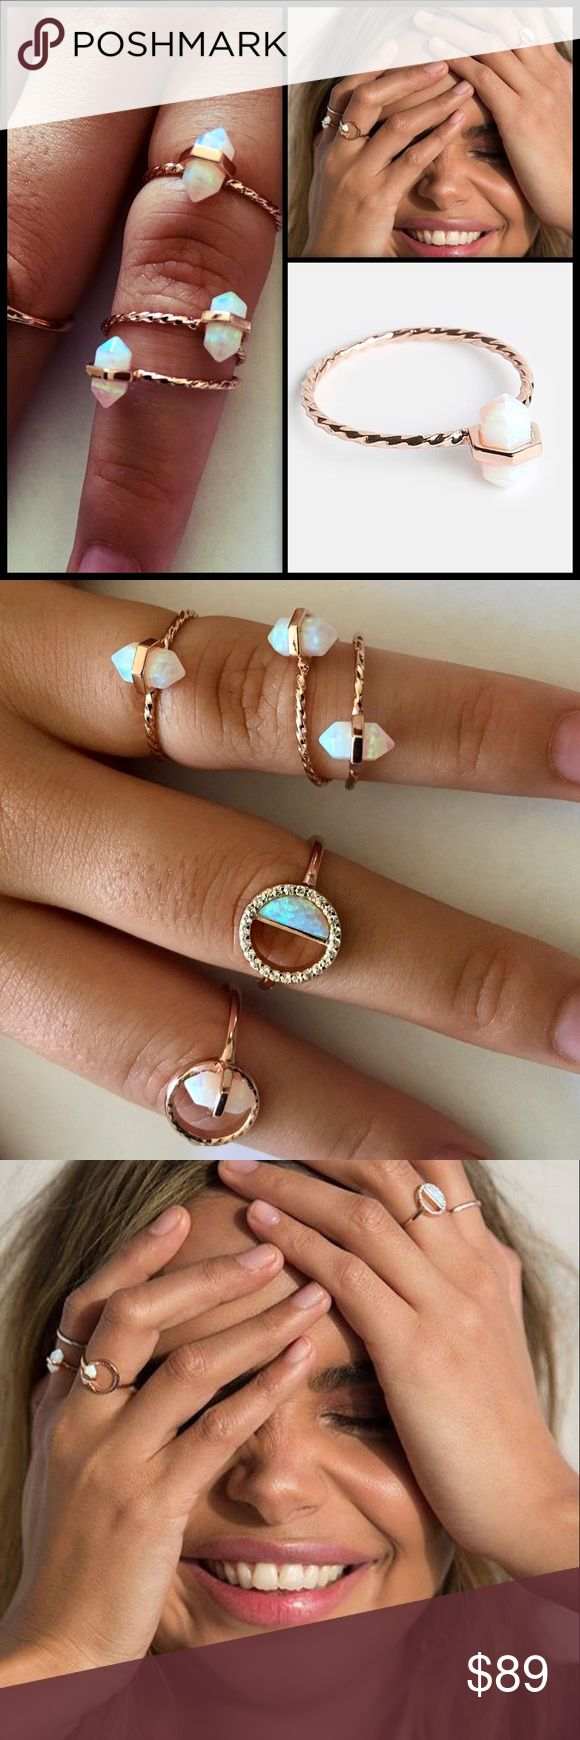 SAMANTHA WILLS 🌙Fleeting Movements Opal/Rose Gold The whimsical wonder of this piece is sure to turn heads. The Fleeting Movements Ring's white opal stone encased by a delicate twisted rose gold band is the embodiment of bohemian-chic. NWOT - Price is for ONE single ring.  Size S/M = approx size 6. Comes in unbranded silk pouch.                                                               Twisted band of 14k rose gold plated sterling silver   Features mineral cut white opal stone…